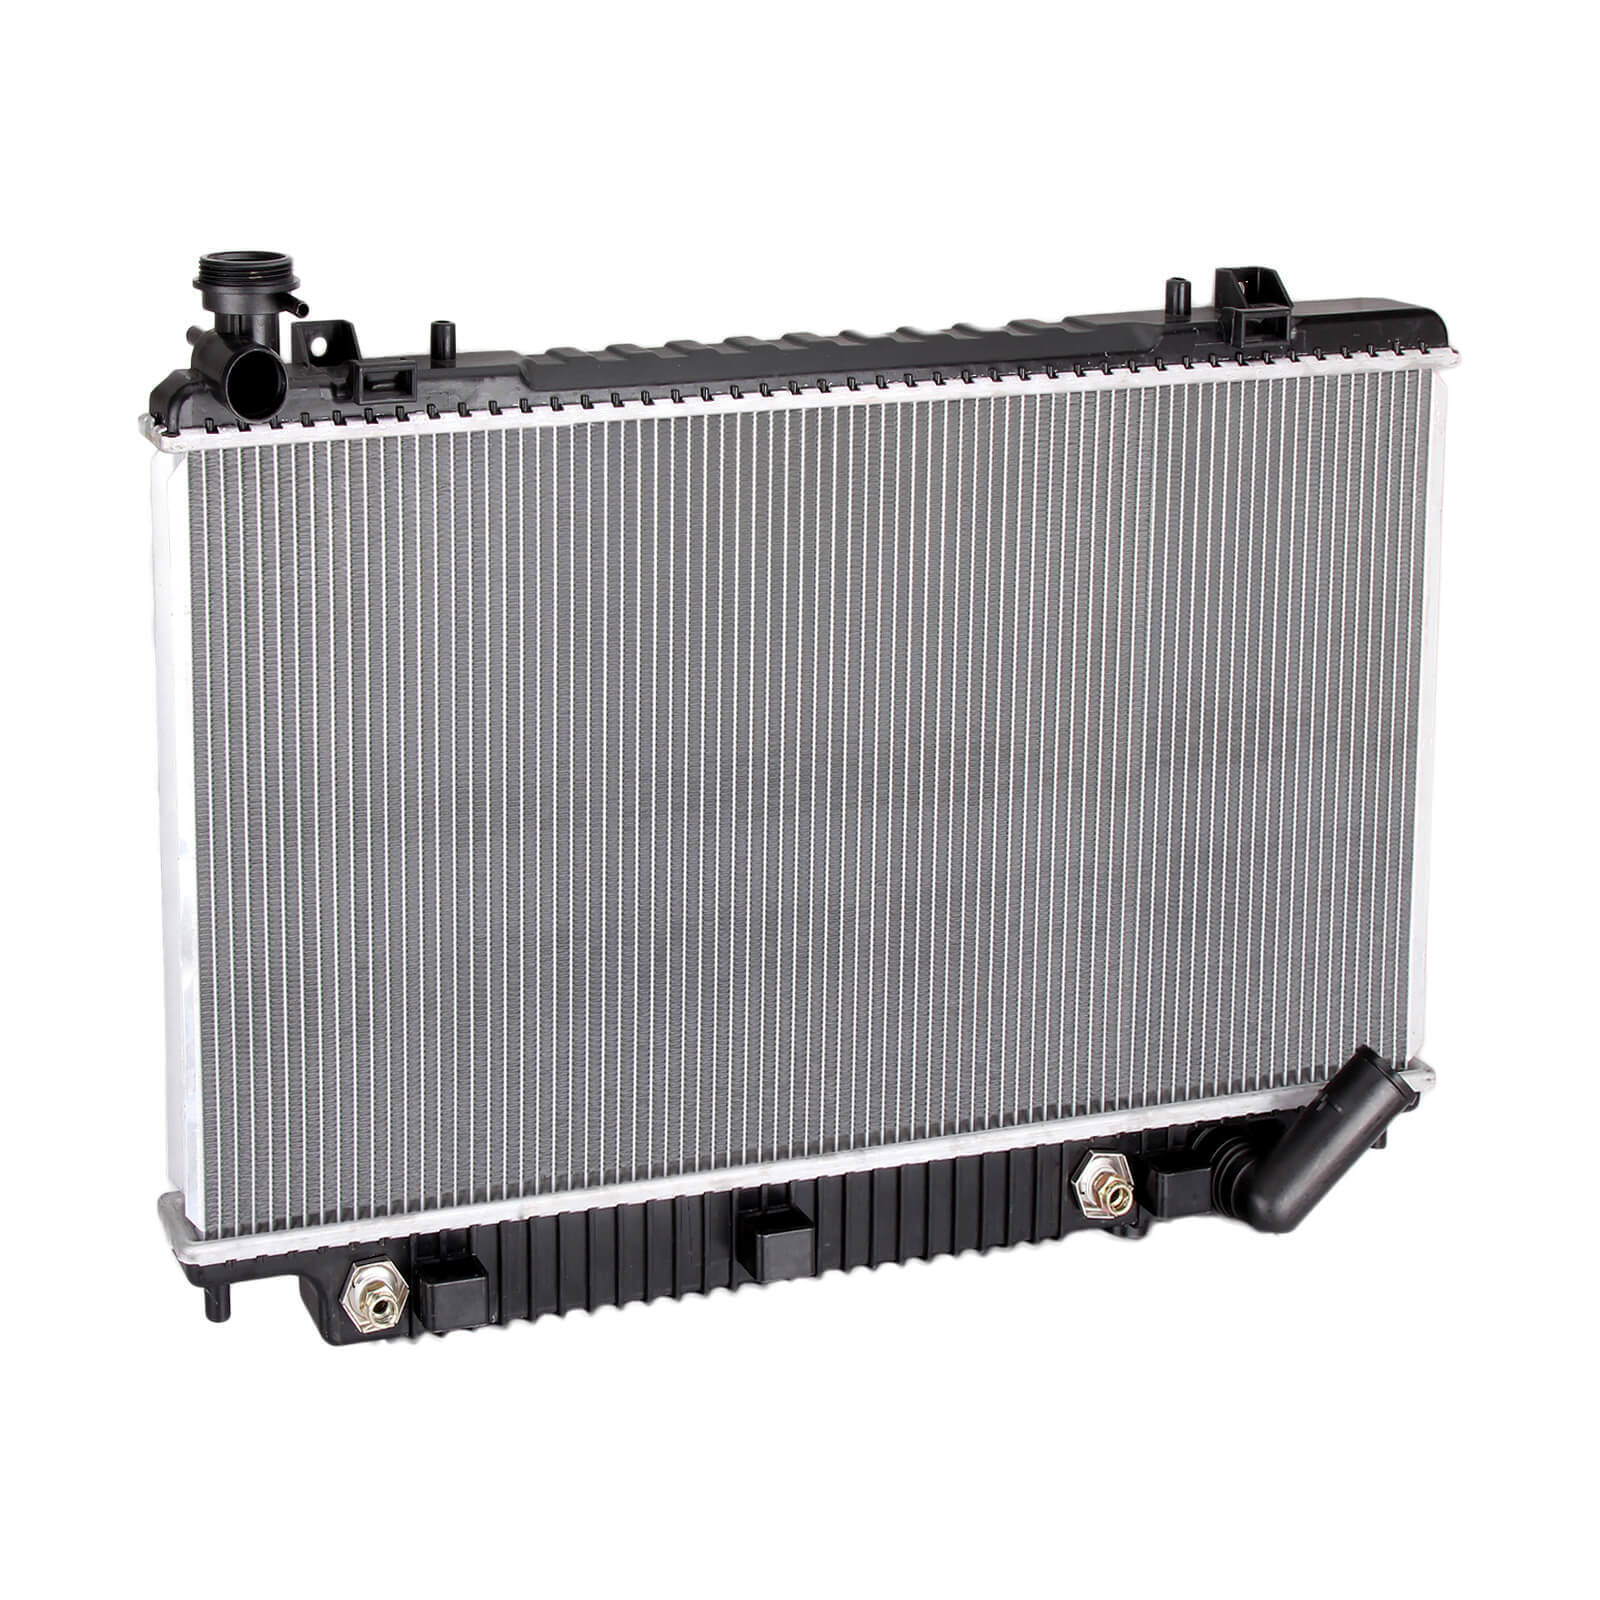 holden radiators for sale 0408 quality Dromedary Brand company